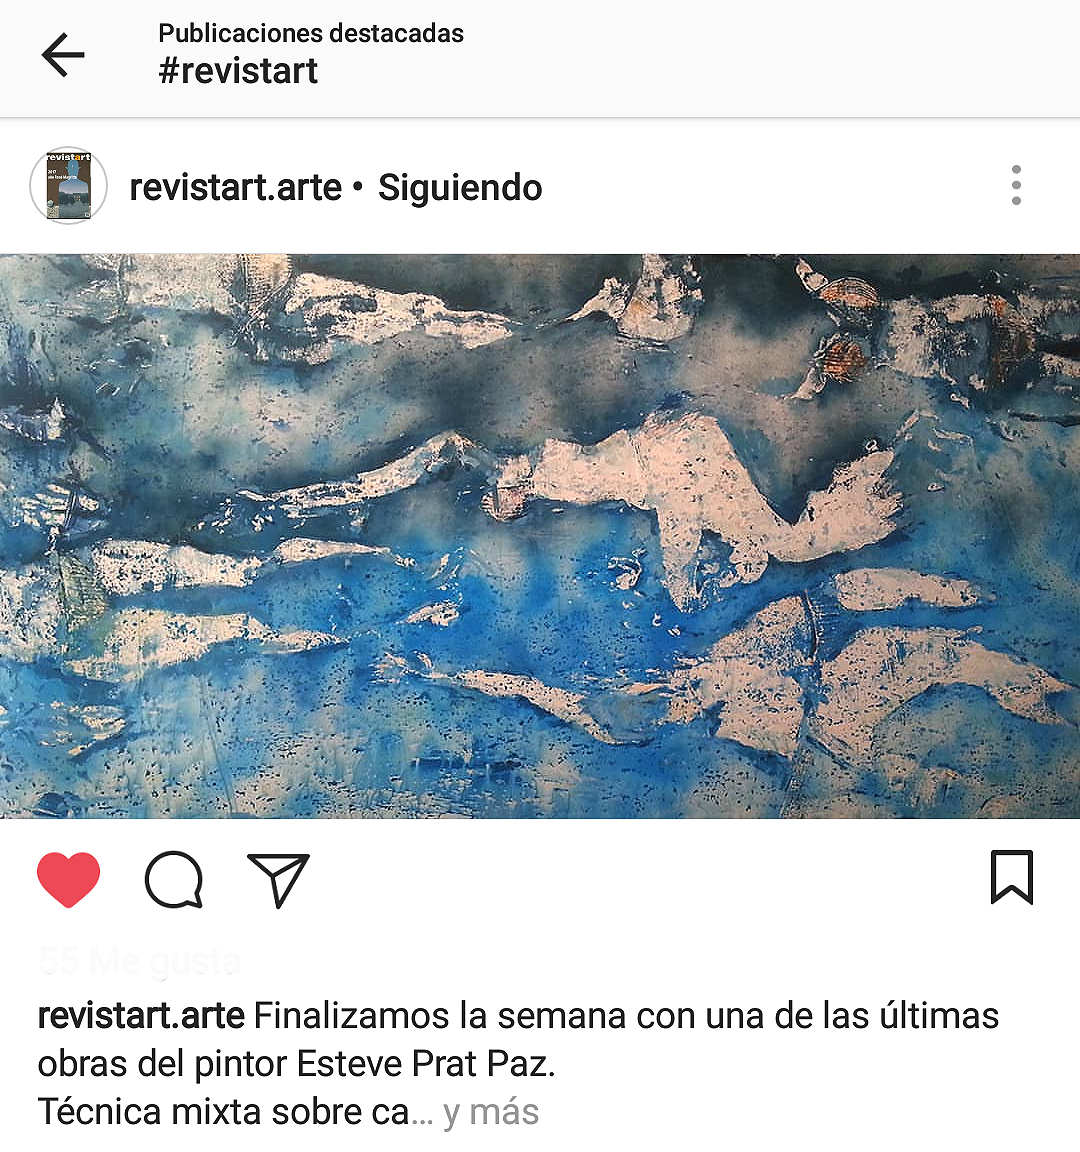 http://esteveprat.cat/wp-content/uploads/32-Instagram-revistart.arte-08-12-2017.jpg